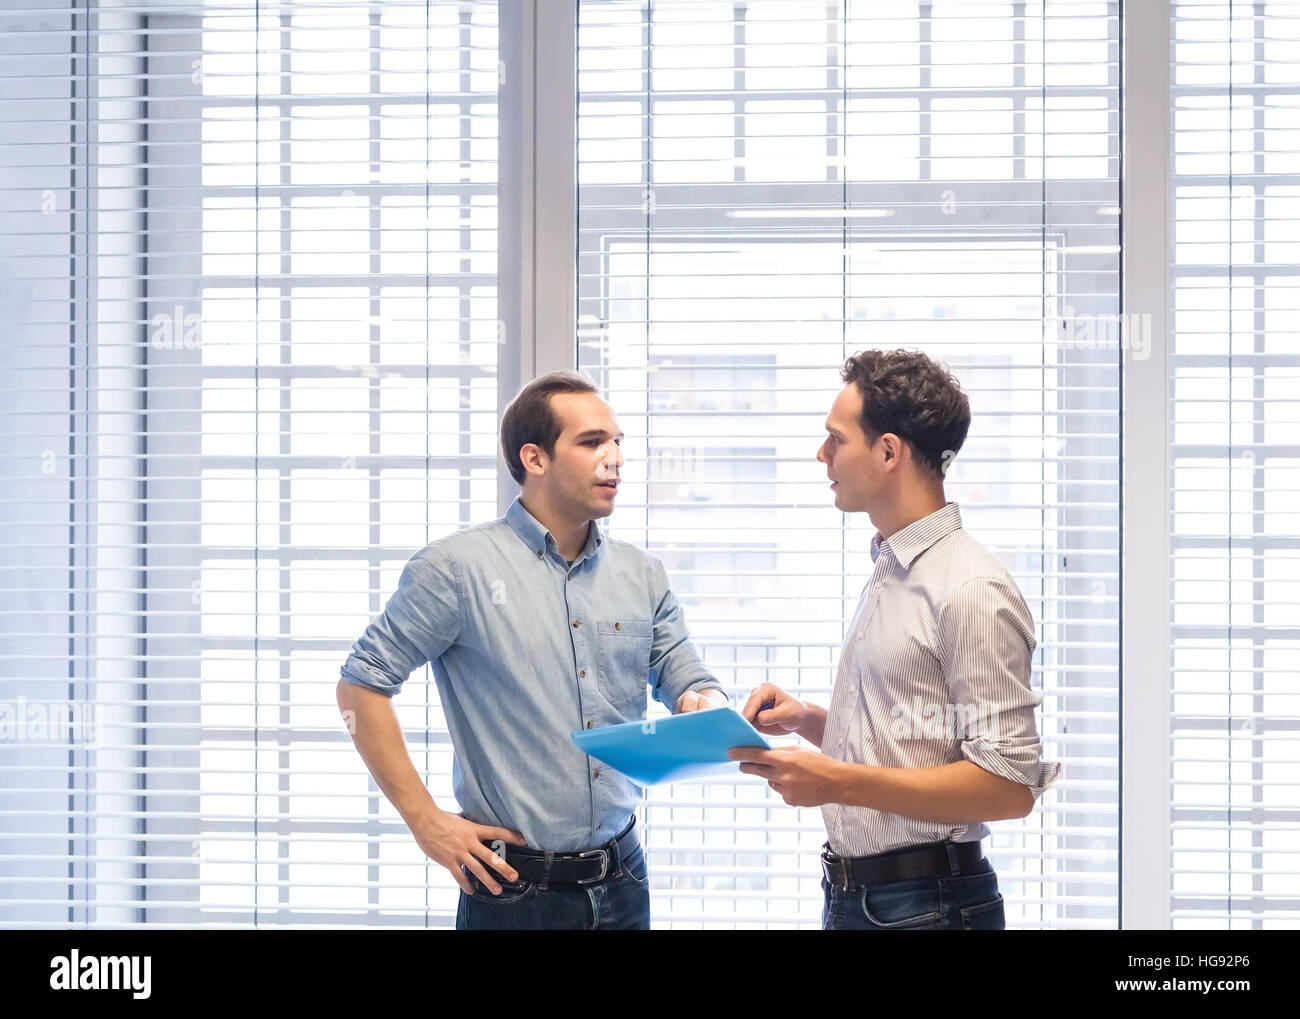 Two colleagues speaking together about project documents standing in bright modern office interior - Stock Image